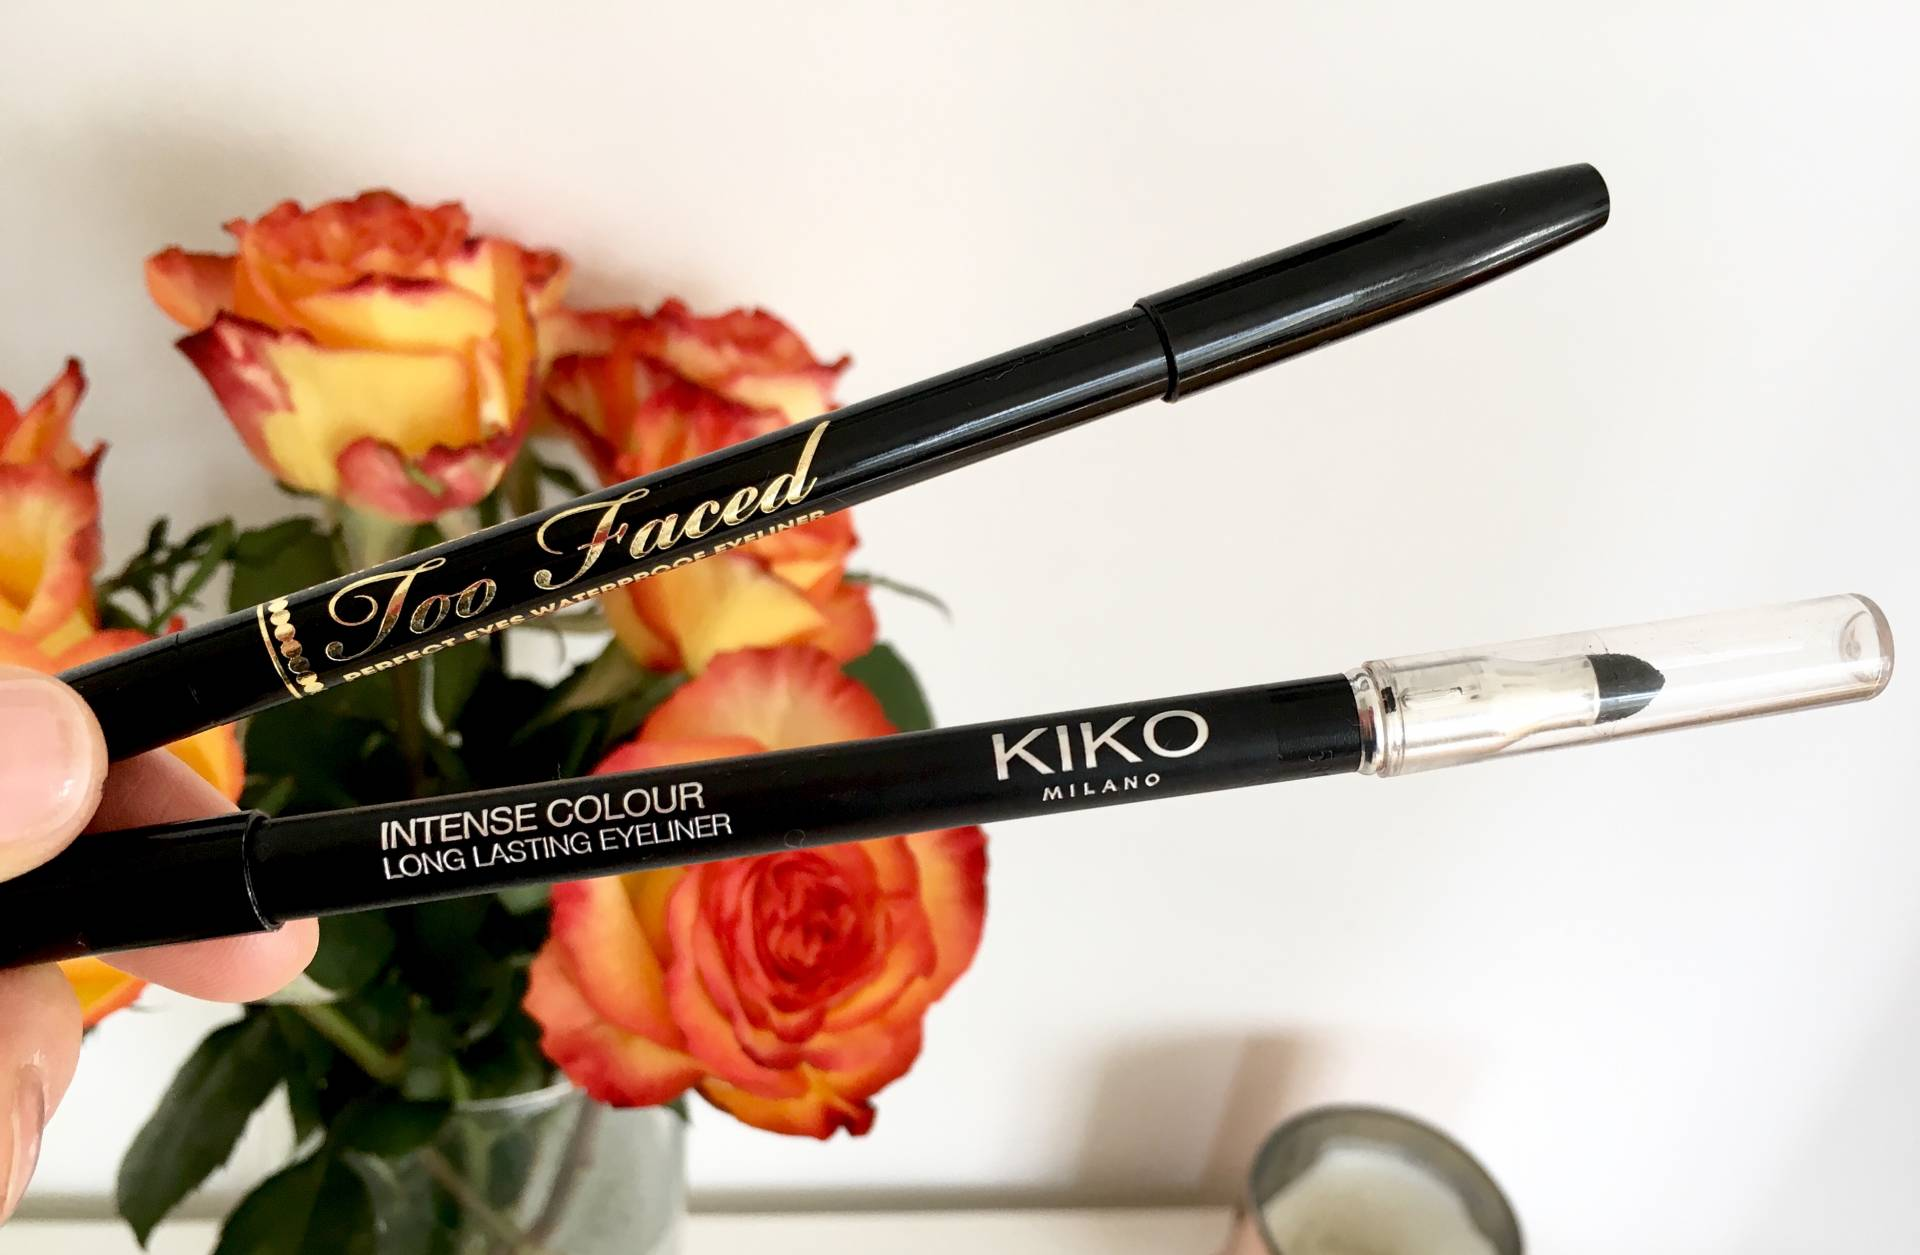 The Best Of : Black Eyeliners | Megan Taylor